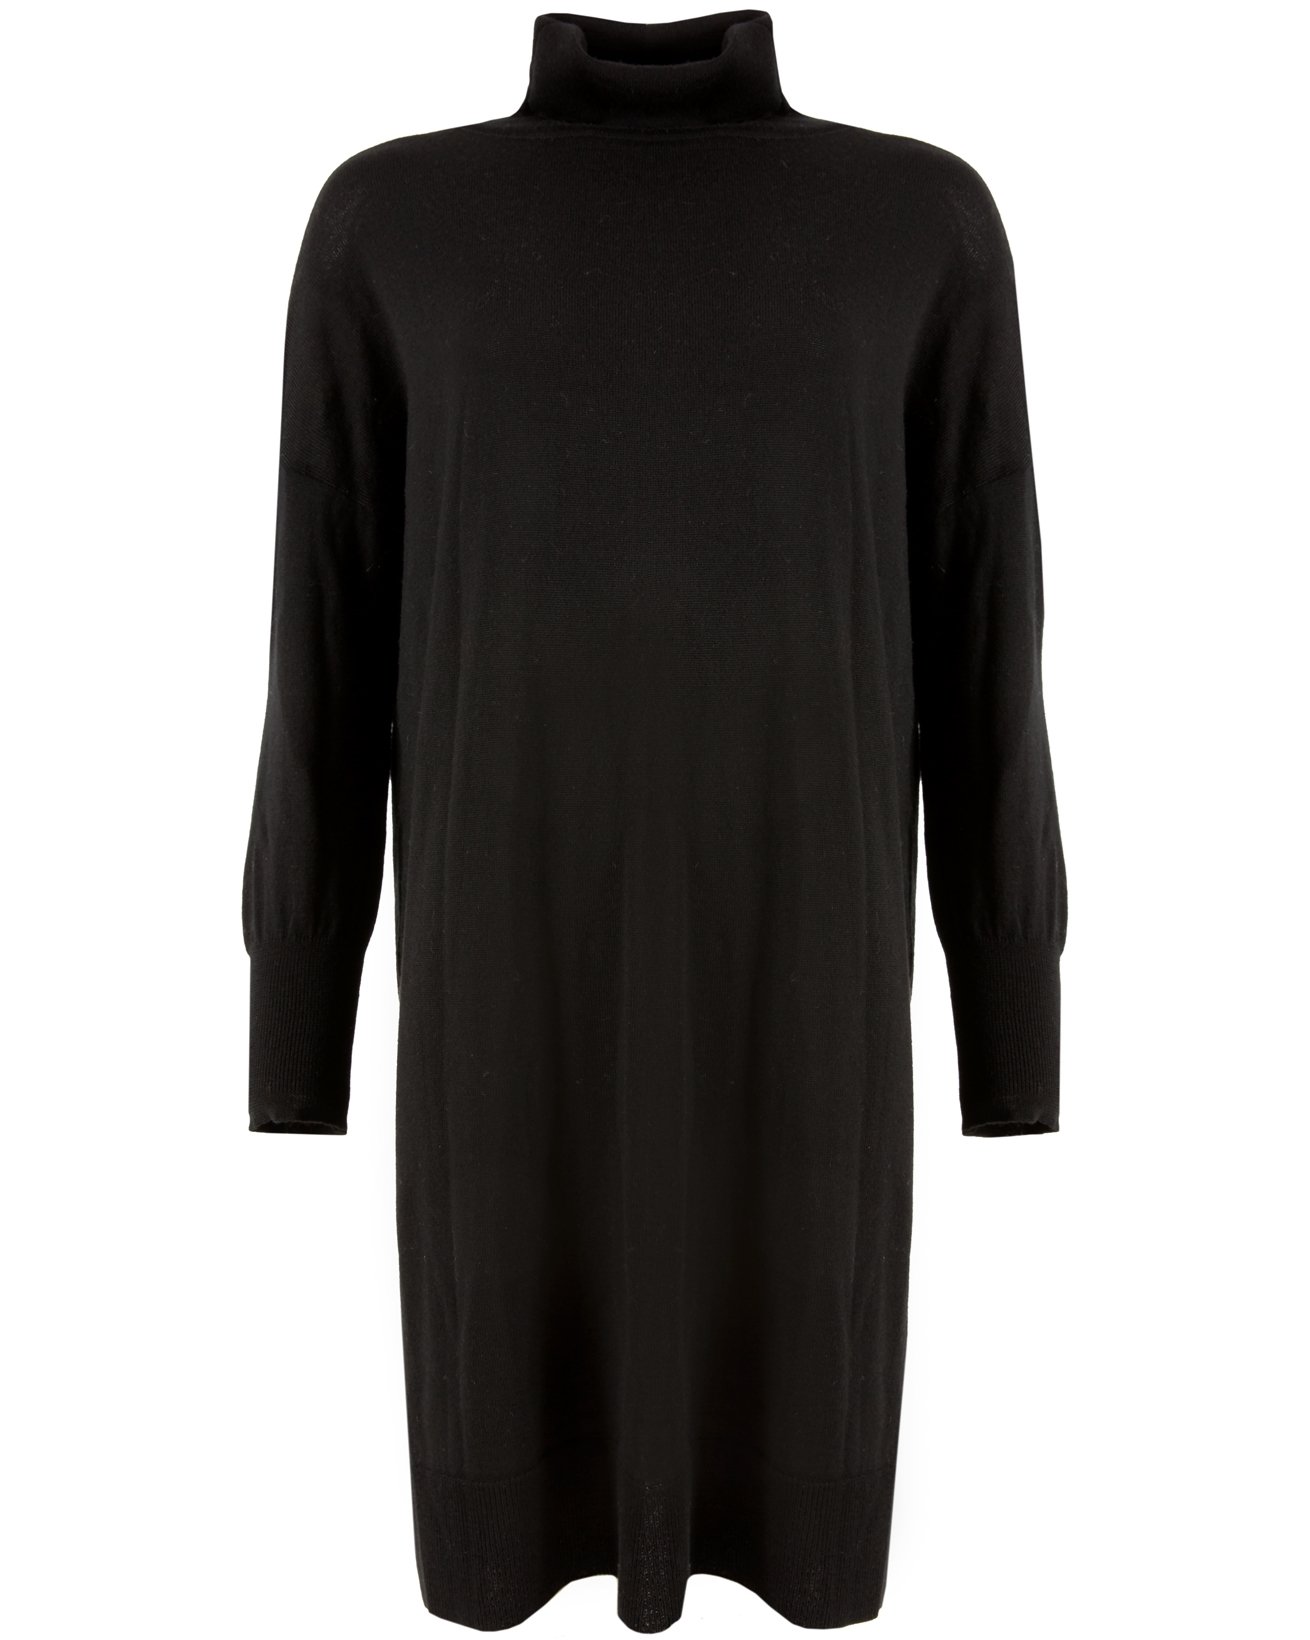 Slouchy Fine Knit Roll Neck Dress - Small - Black - 1099